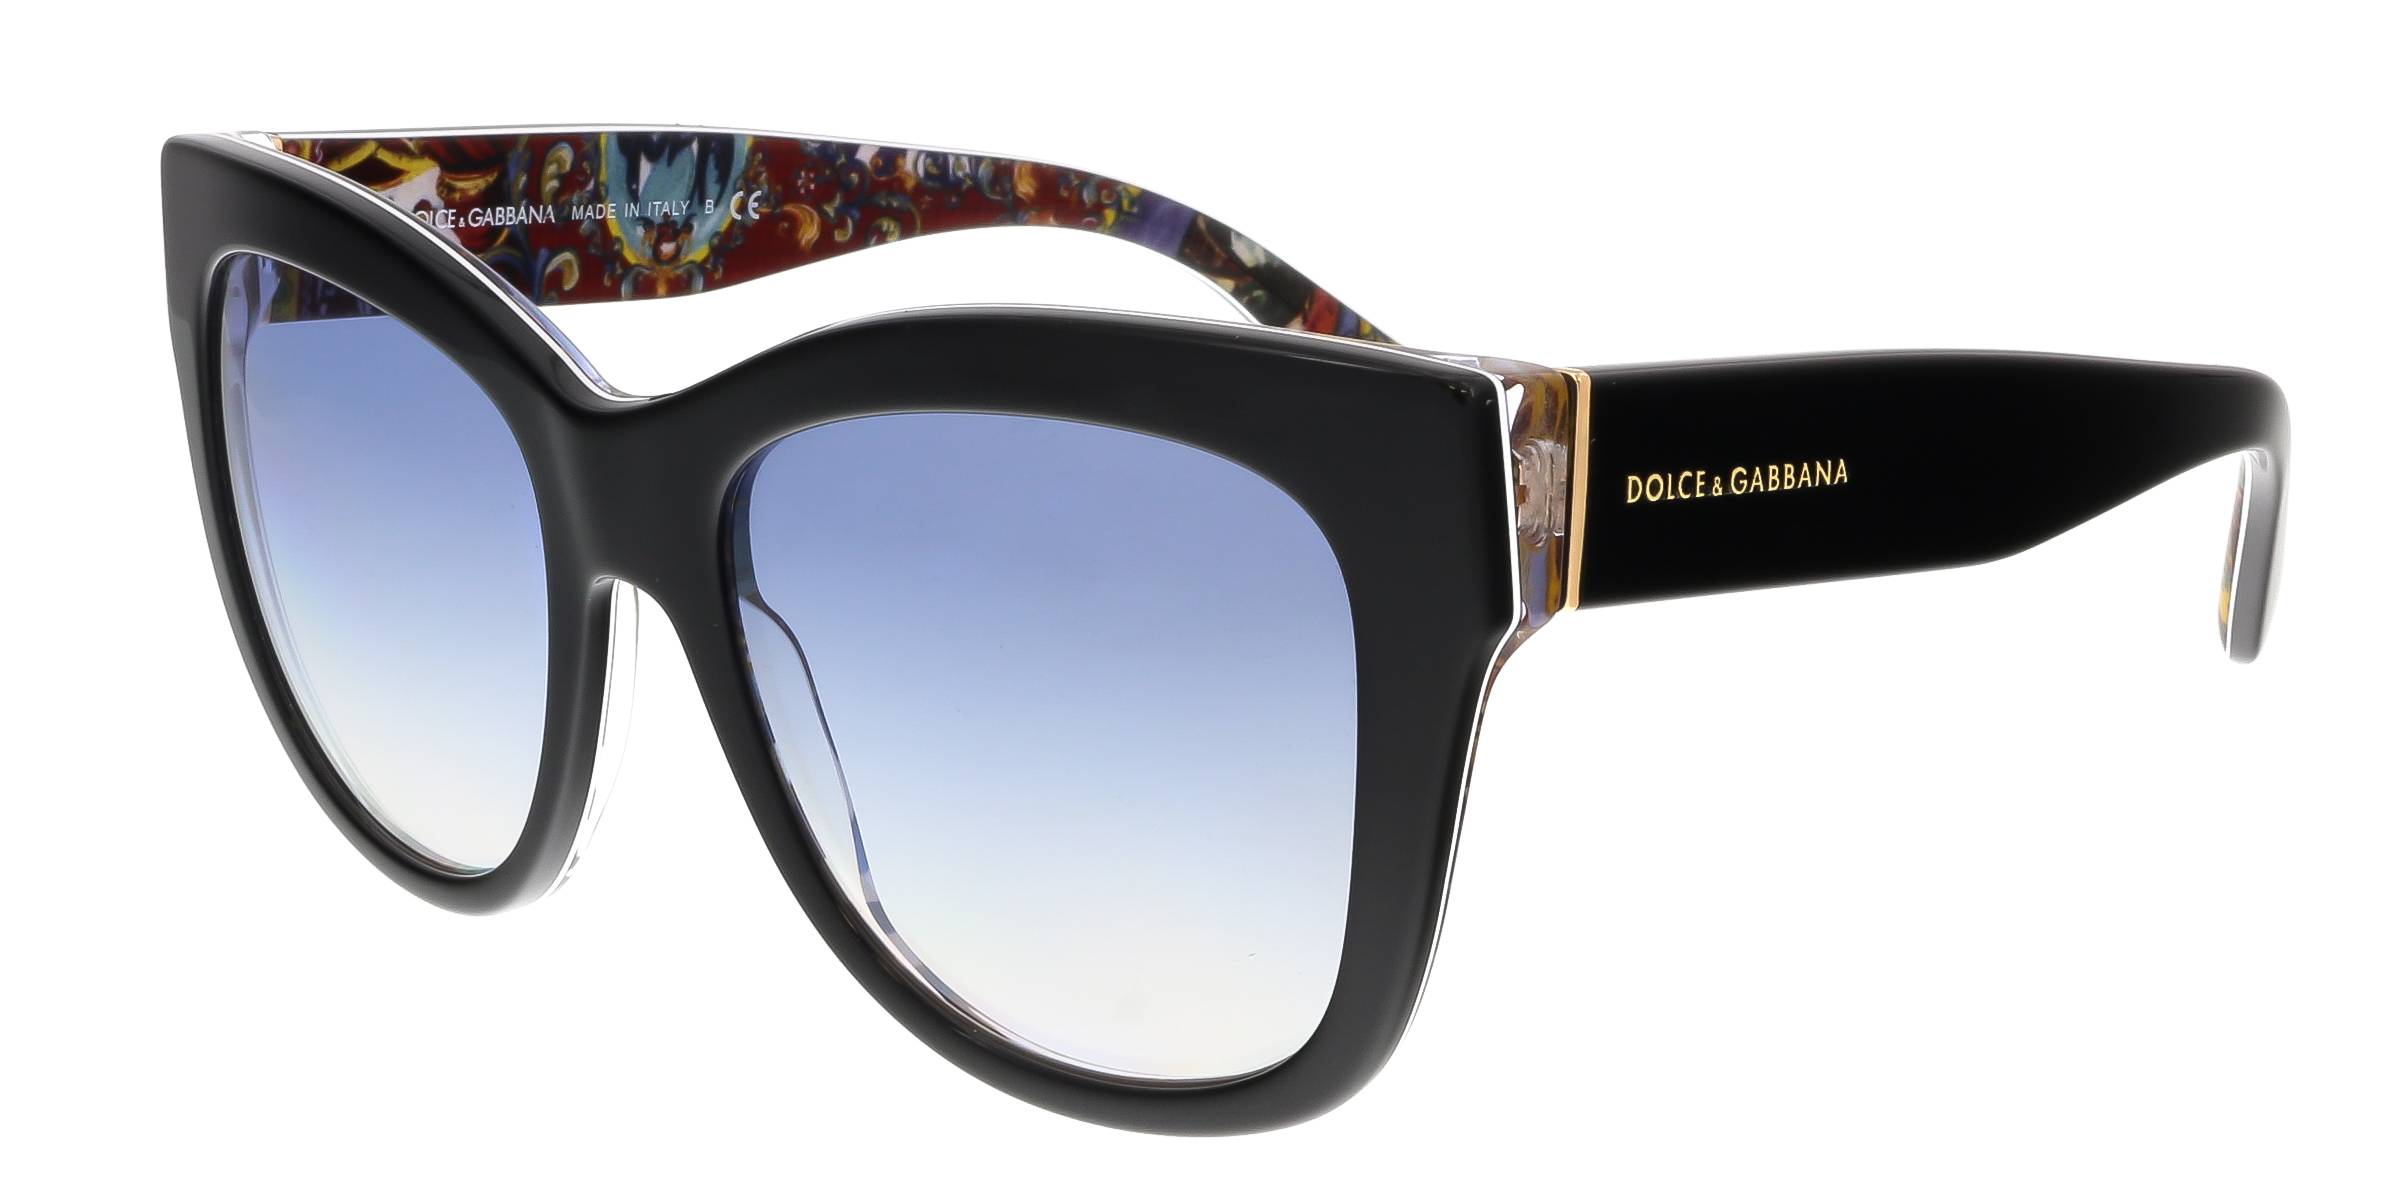 Dolce & Gabbana DG4270 303319 Black Cateye  Sunglasses